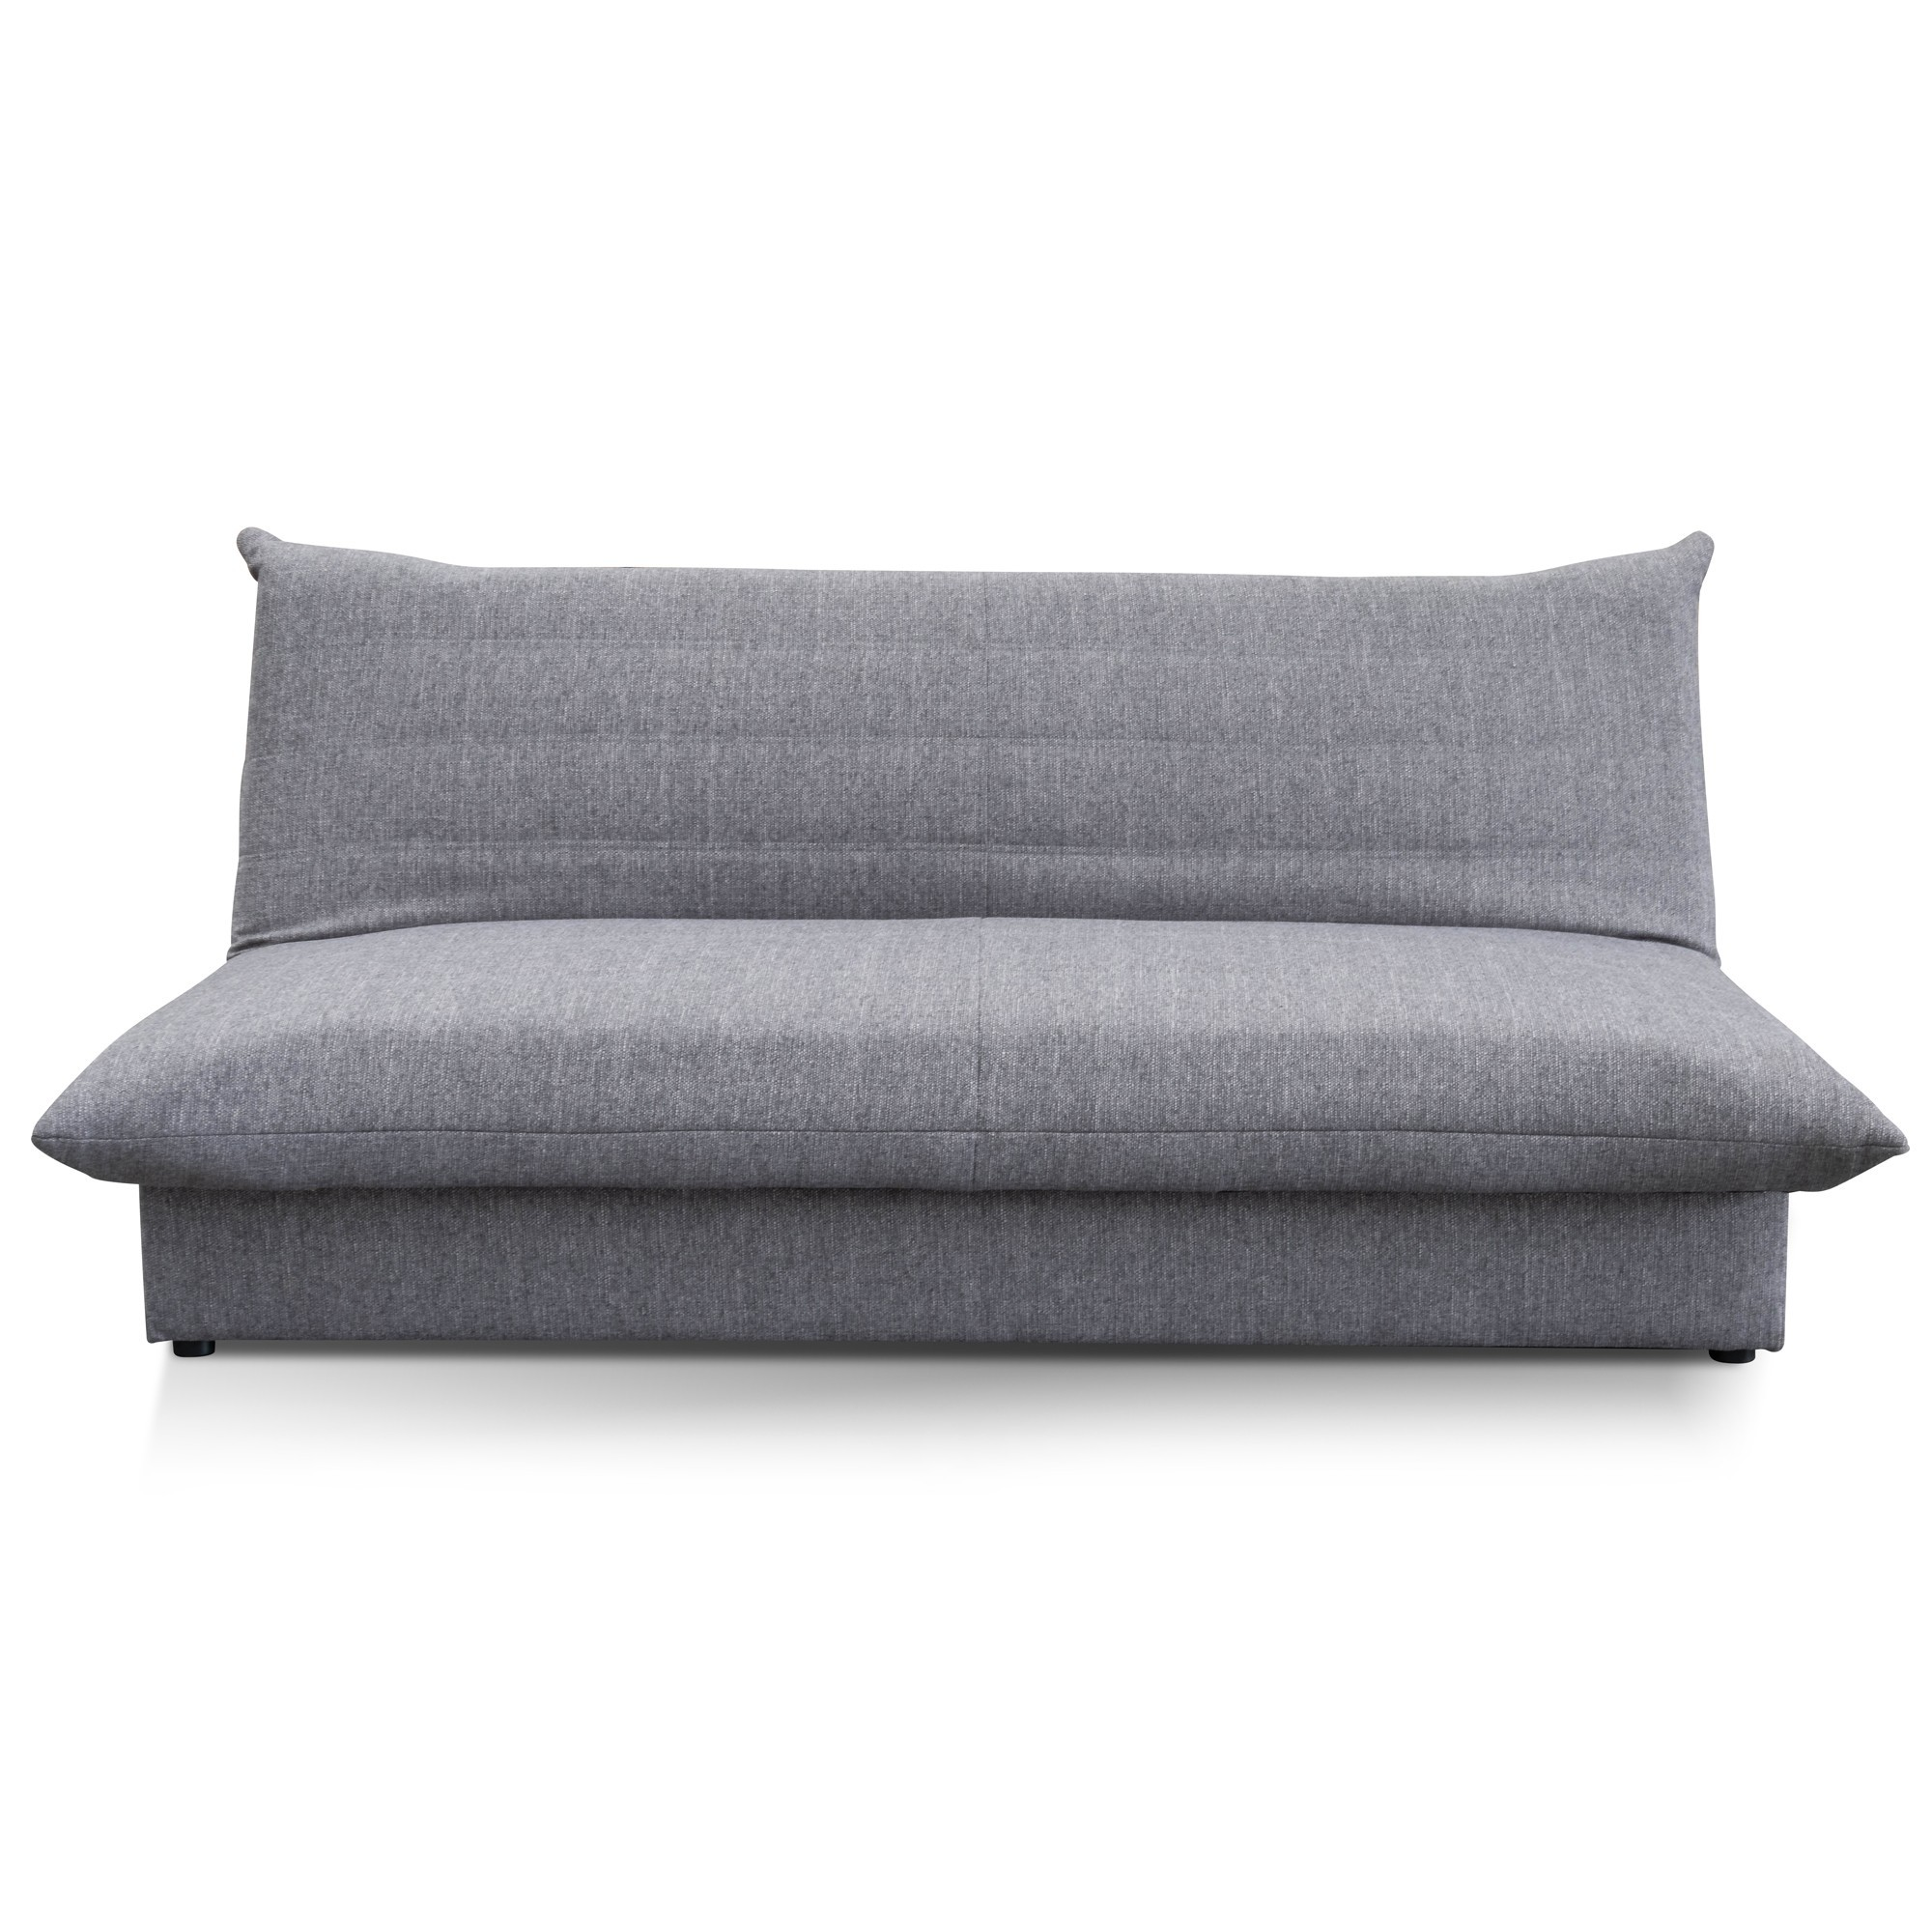 Greenwell Fabric Clic Clac Sofa Bed, 2 Seater, Grey